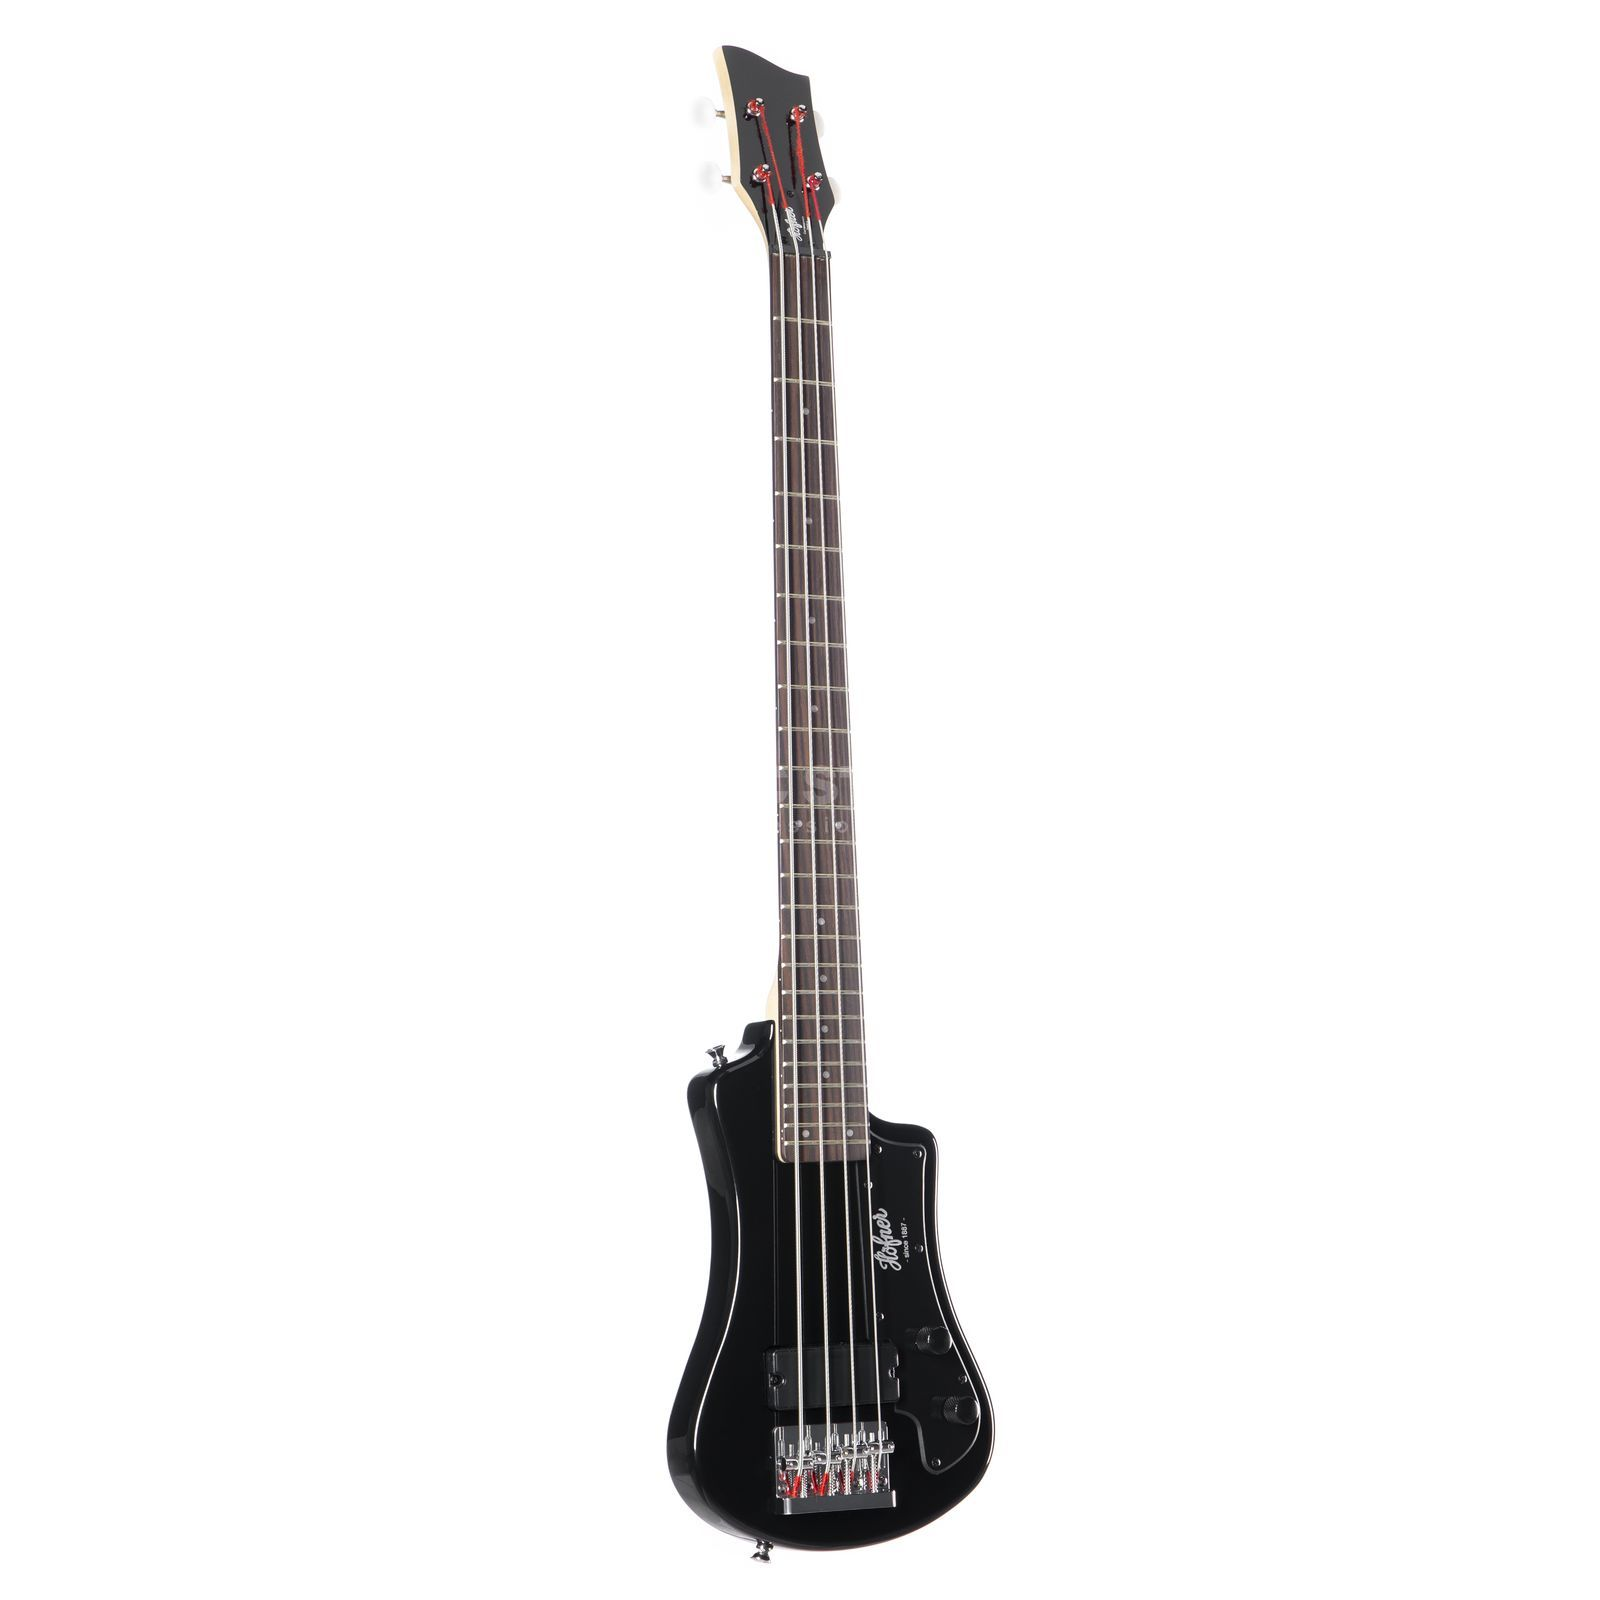 Höfner Shorty Bass CT Black HCT-SHB-BK-0 Image du produit